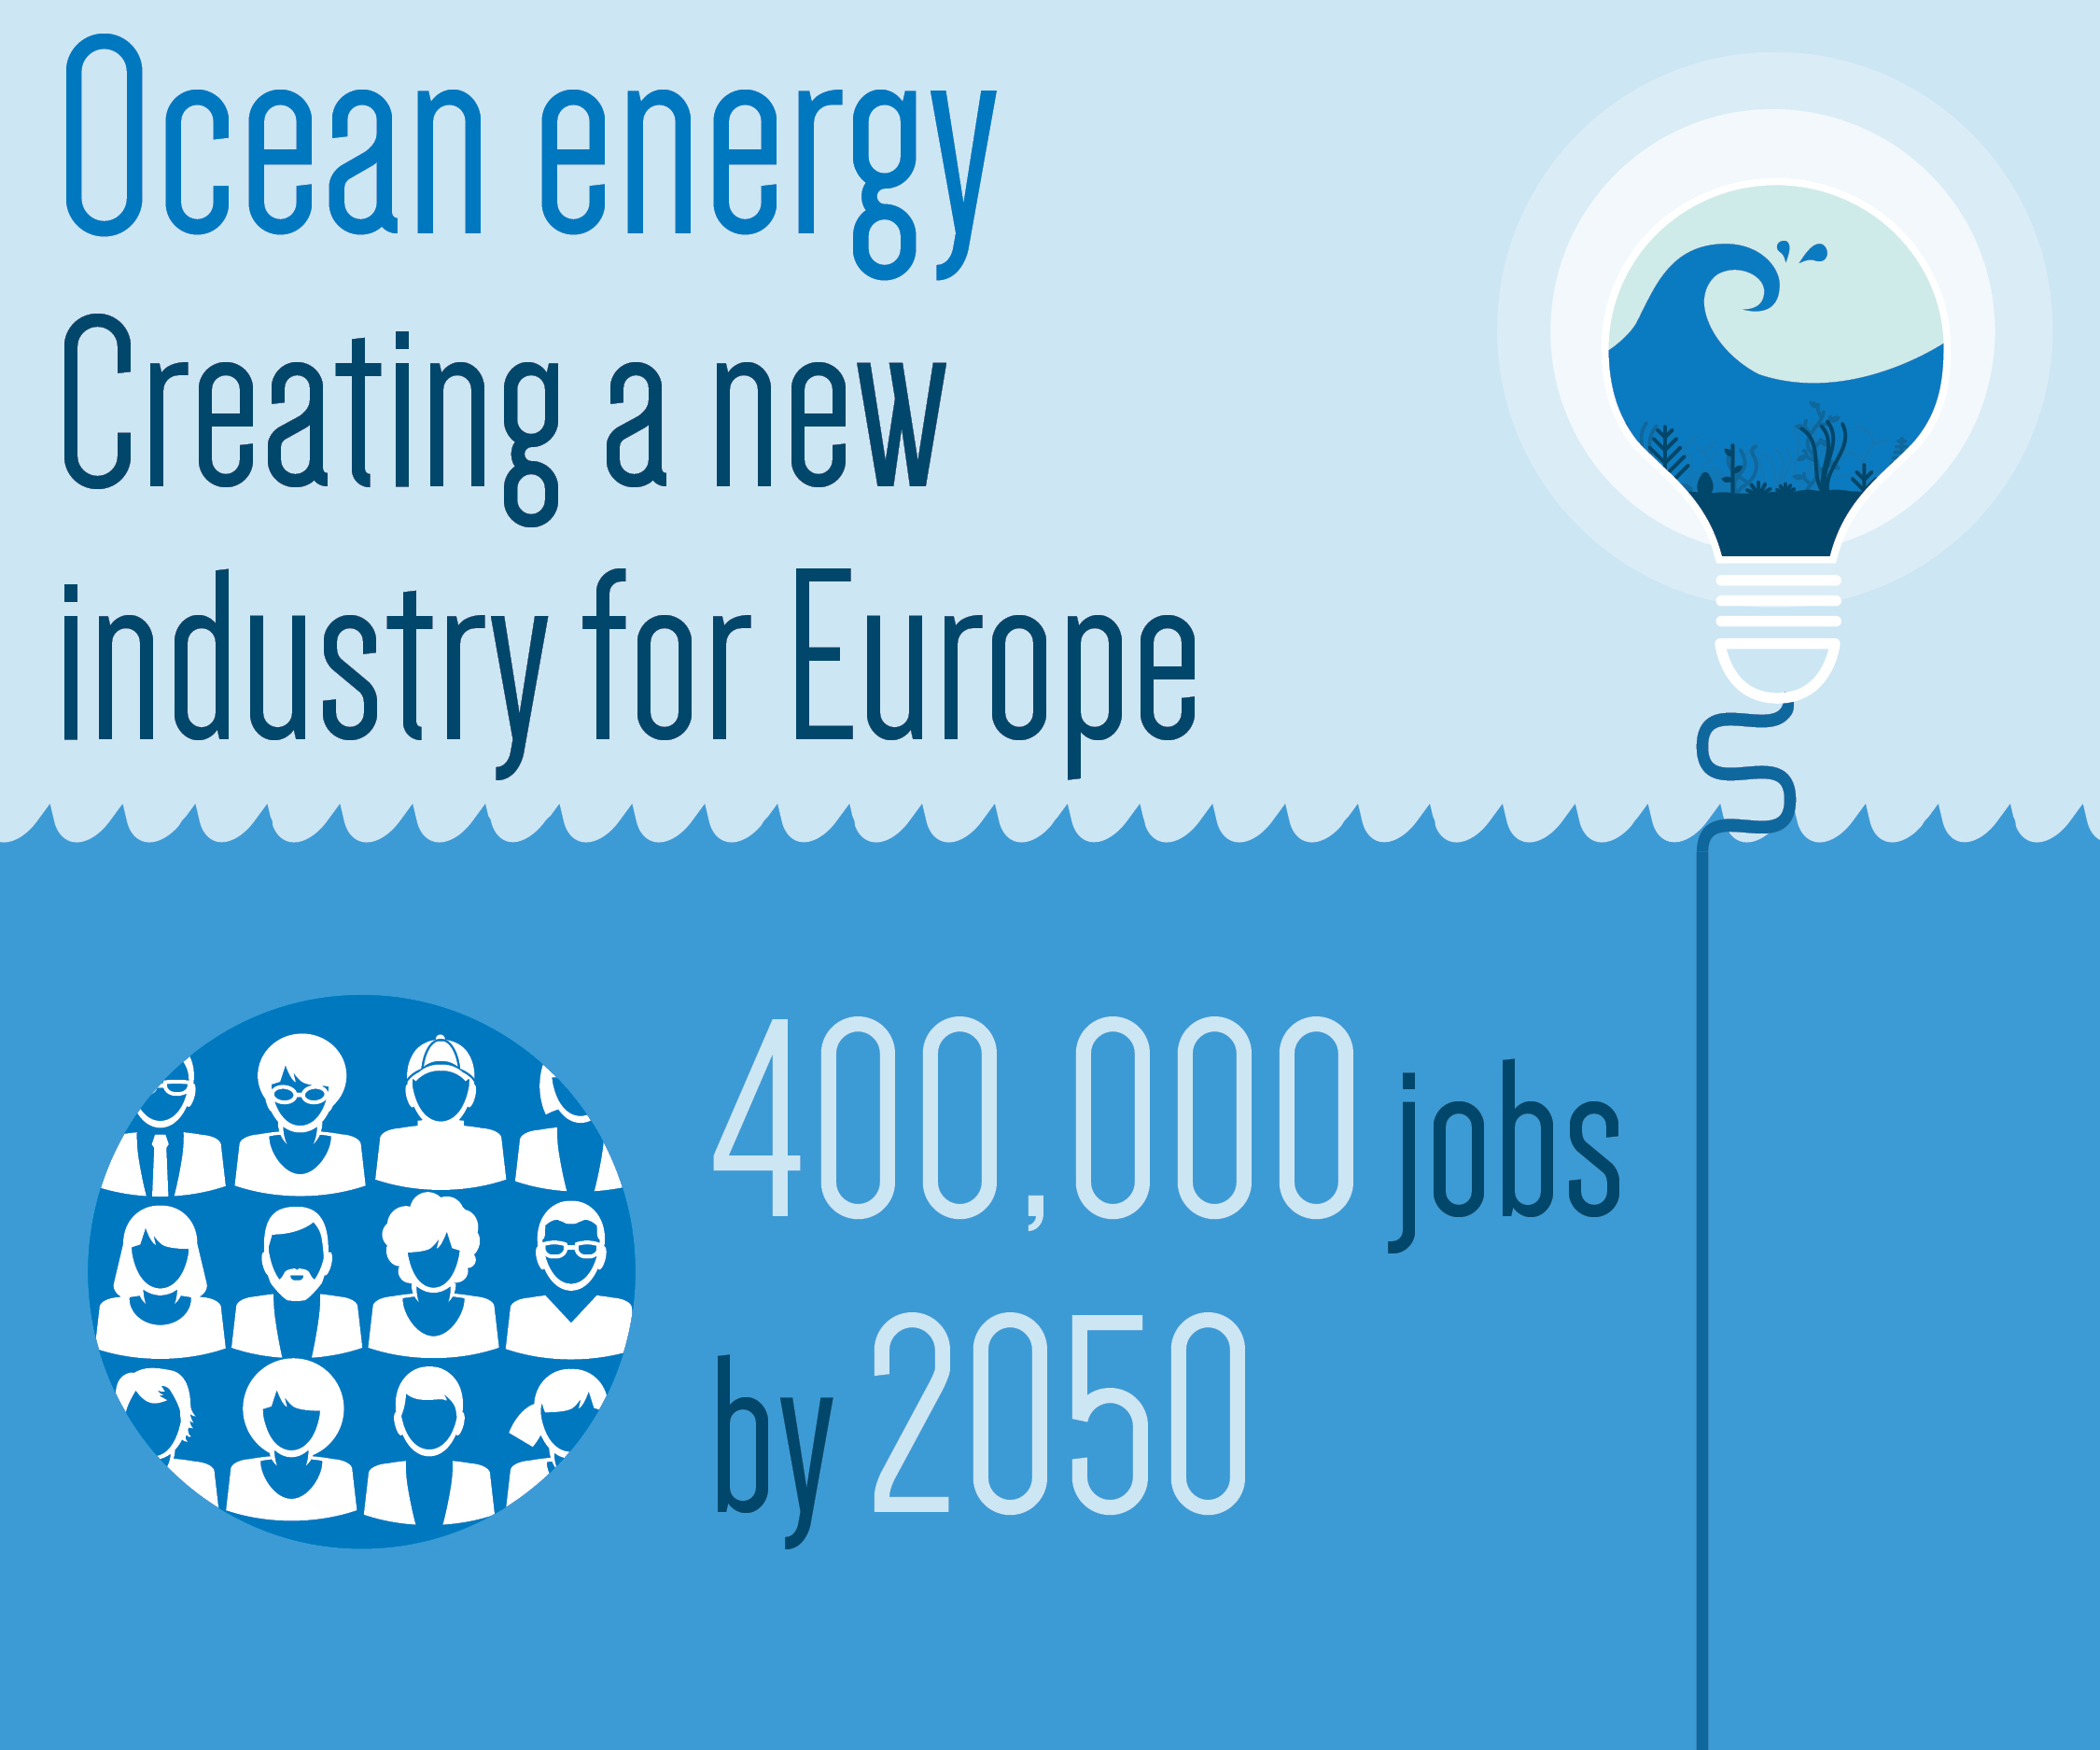 Ocean Energy creating jobs